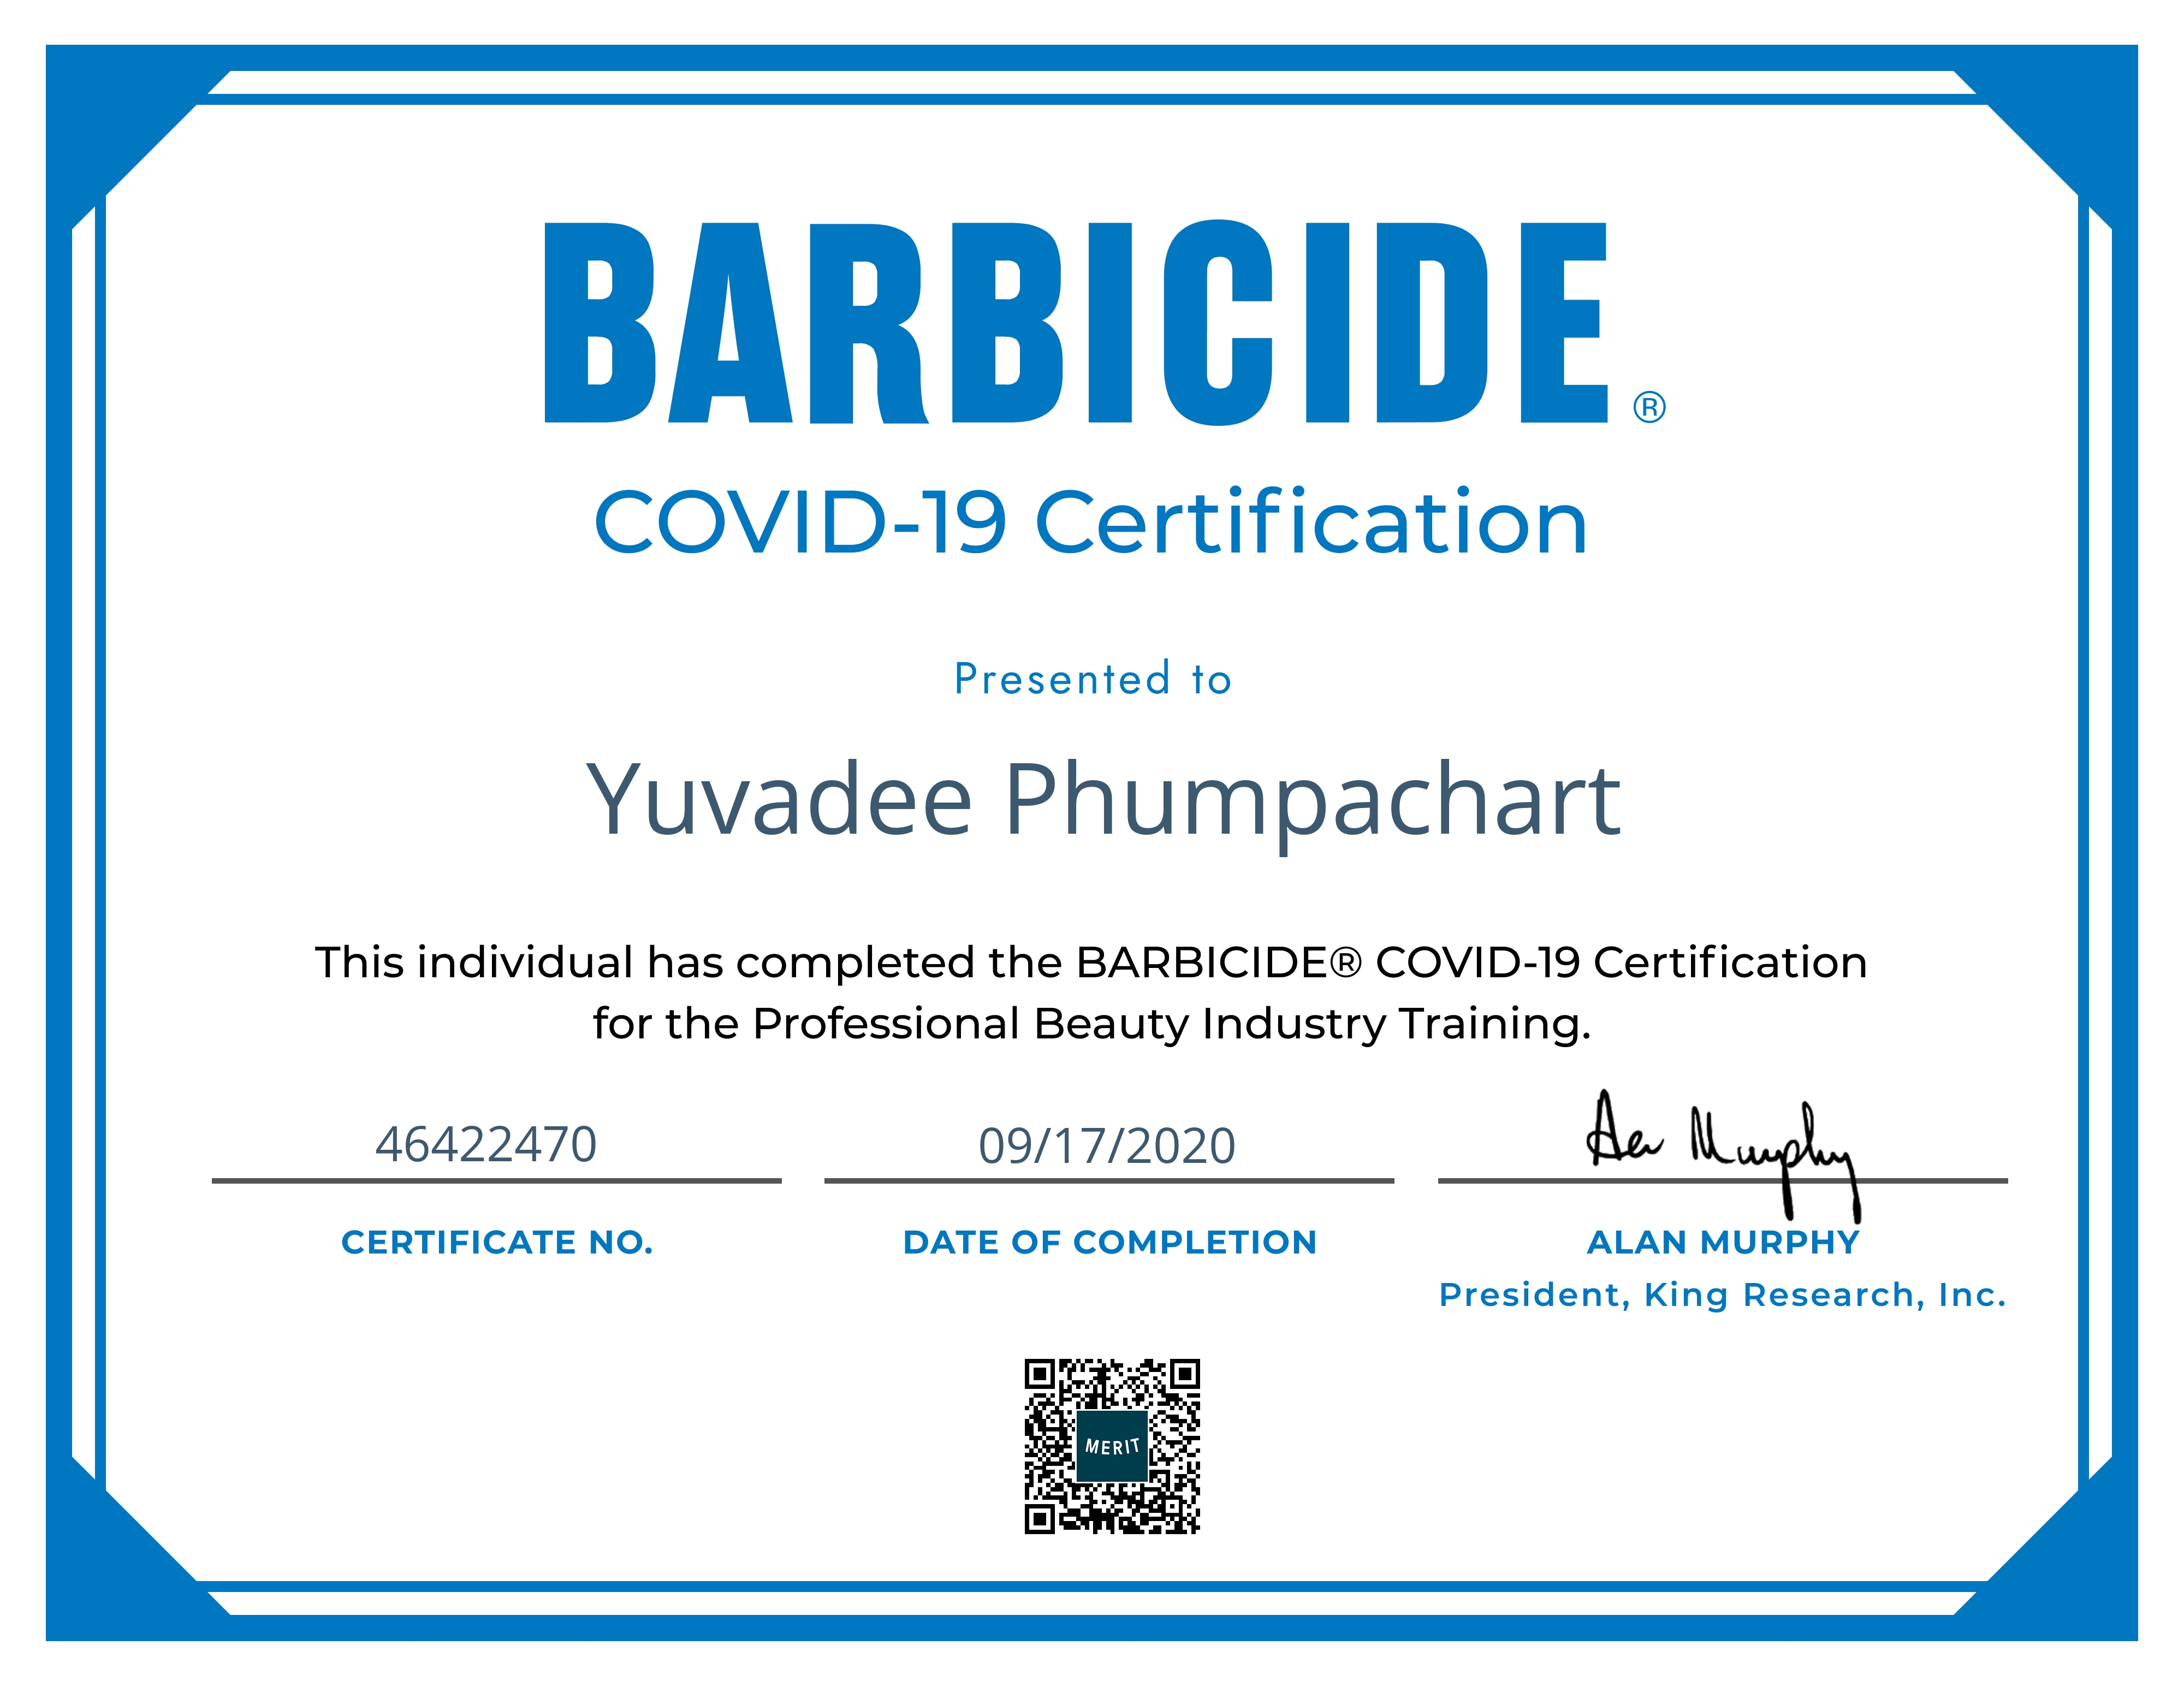 Digital certificate for a BARBICIDE® COVID-19 Certification merit sent to Yuvadee Phumpachart from BARBICIDE®